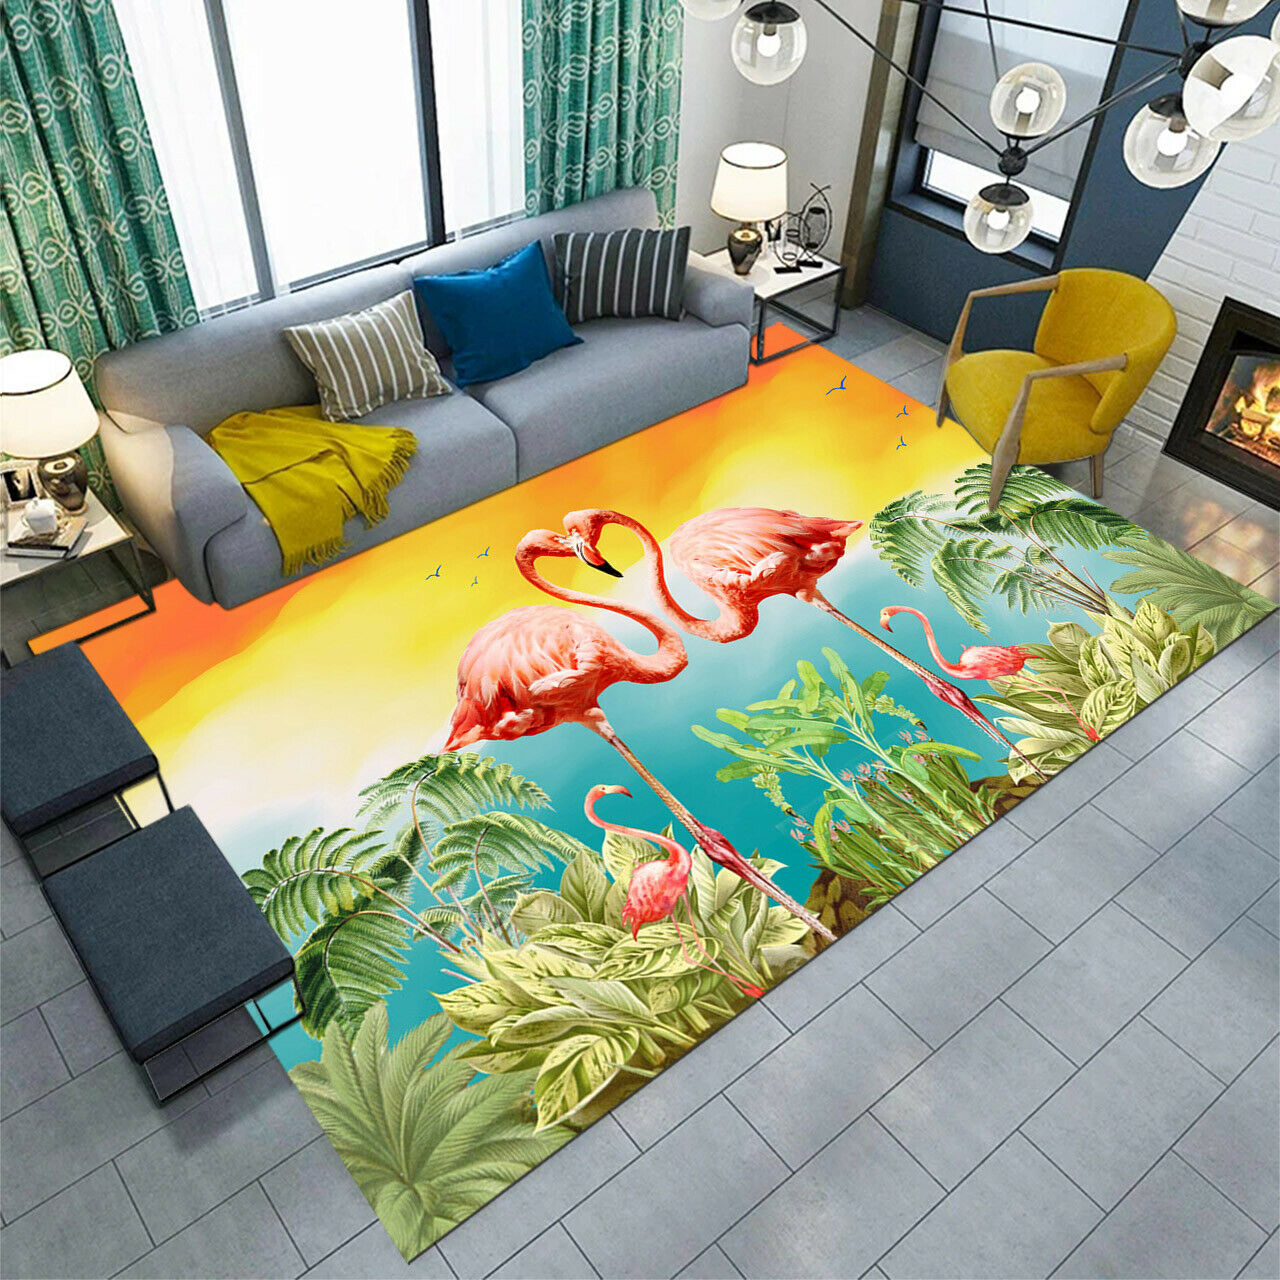 Tropical Flamingo Palm Tree Area Rugs Living Room Carpet Bedroom Floor Mat Decor